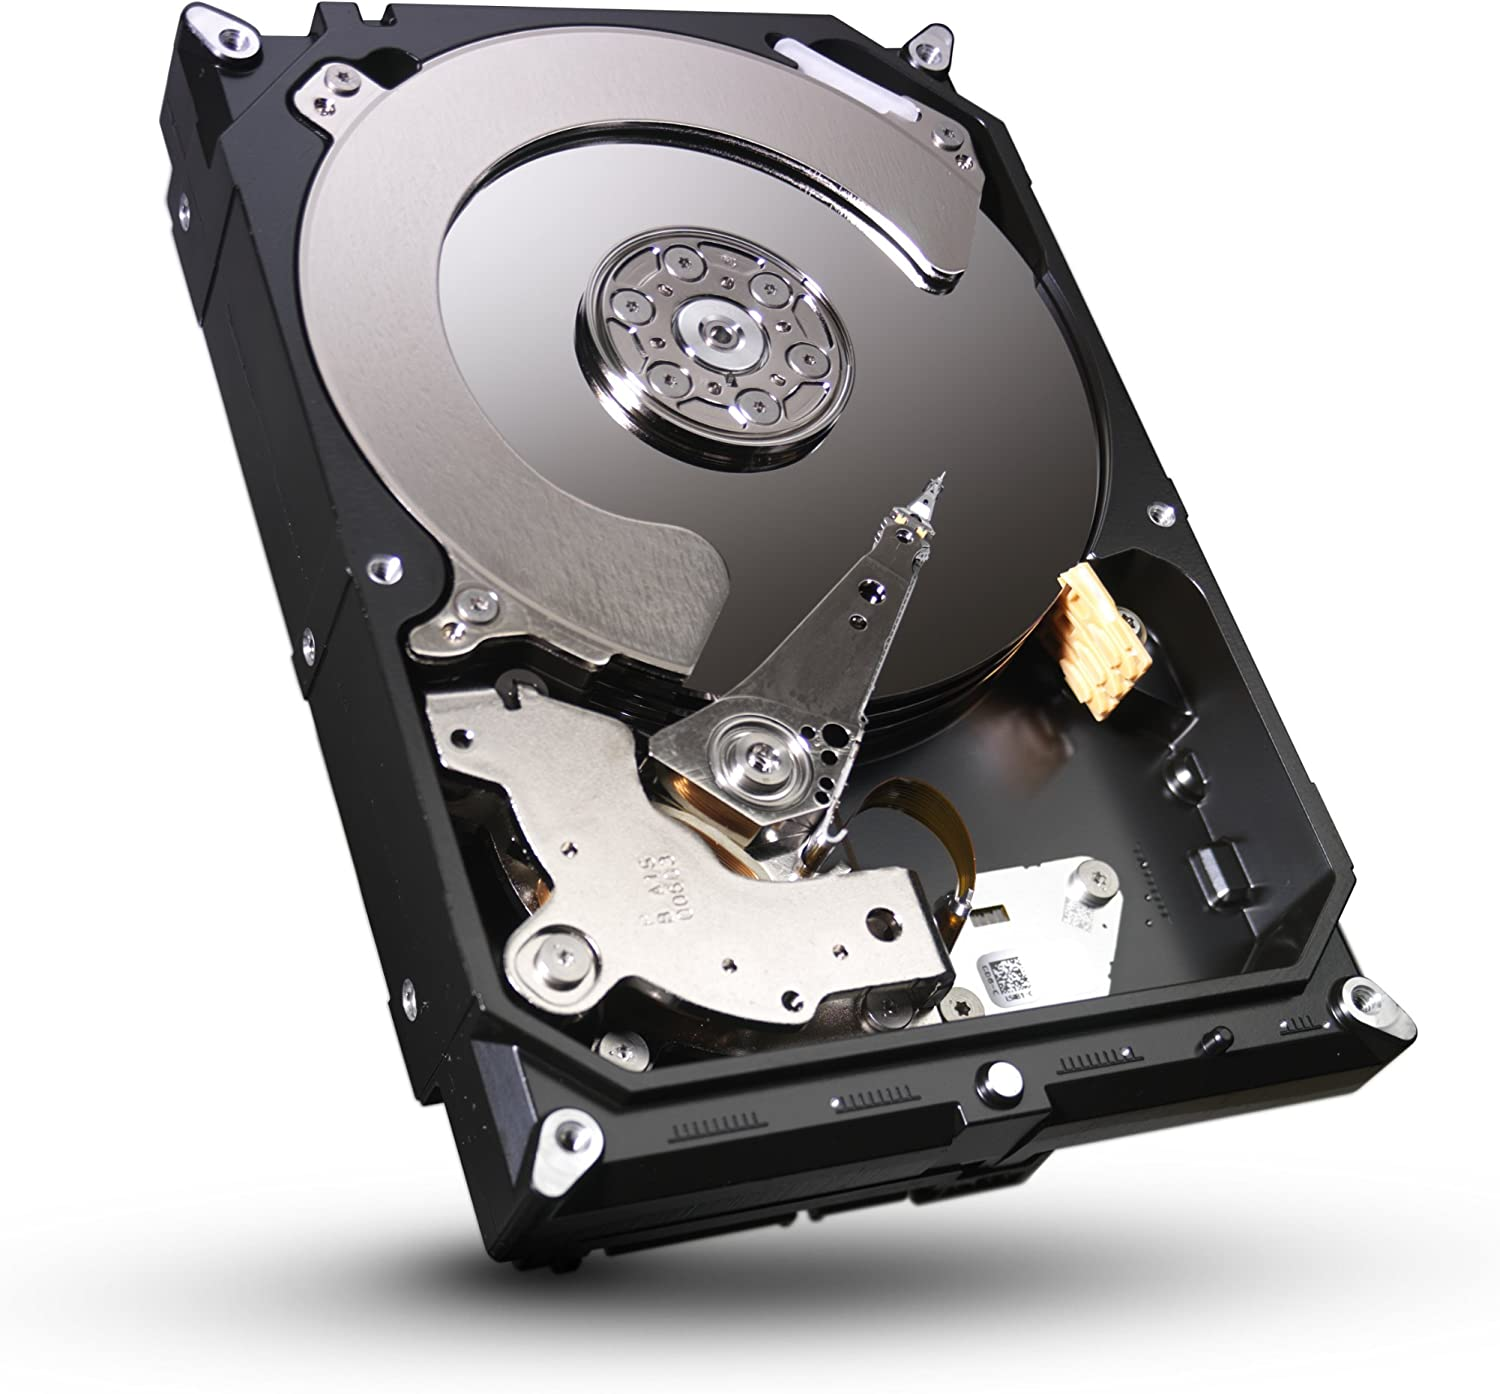 Seagate 1TB Desktop HDD SATA 6Gb/s 64MB Cache 3.5-Inch Internal Drive Retail Kit (ST310005N1A1AS)